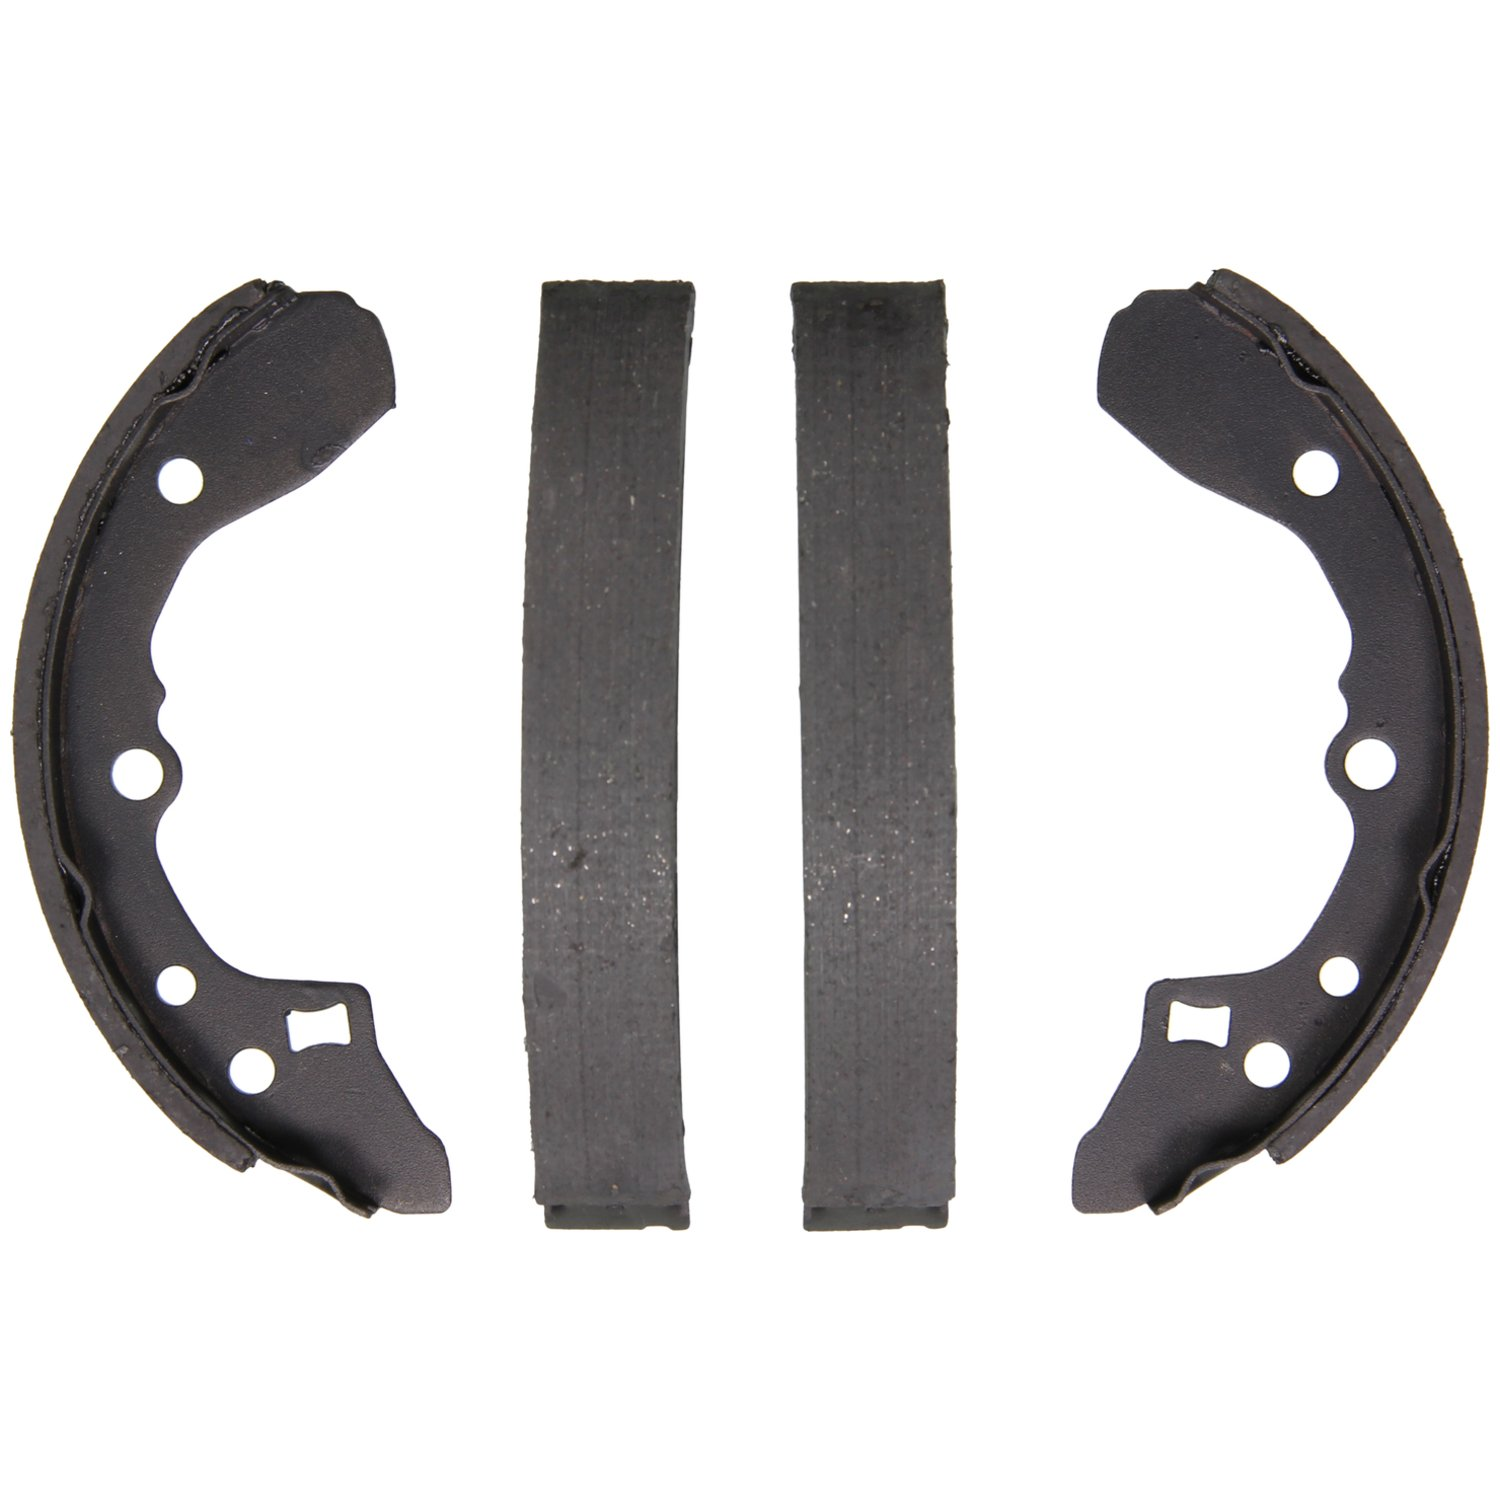 Rear Wagner Z577 Brake Shoe Set